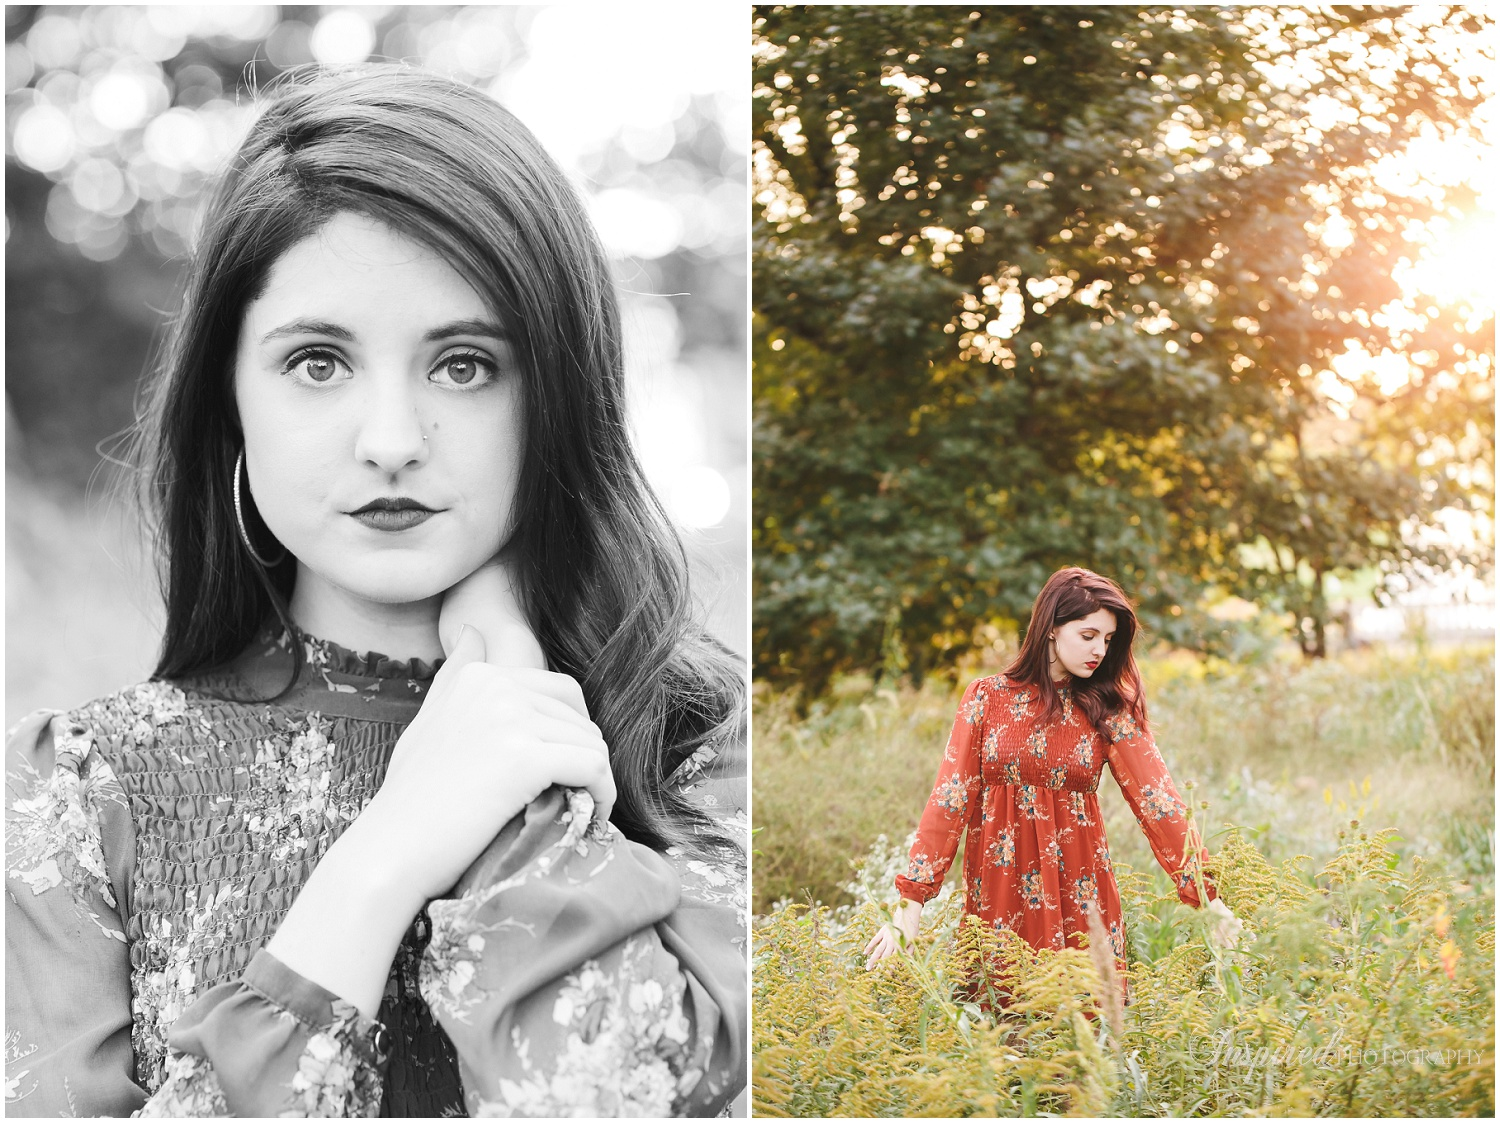 St. Louis Senior Portrait Photography, Vintage Vinyl, Forest Park, Class of 2017, Graduate, Senior Photos // www.inspiredphotographystl.com